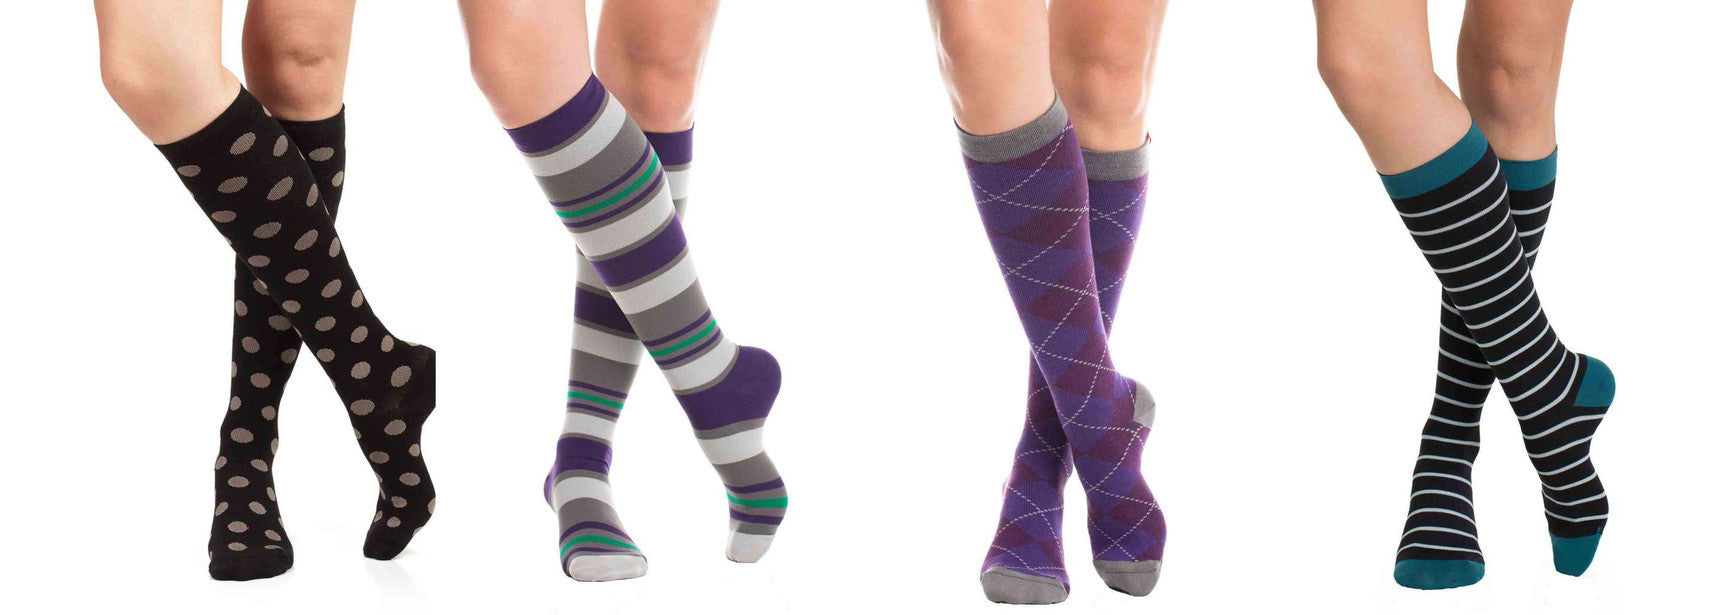 Shop fashionable compression socks: Vim & VIgr and Top & Derby